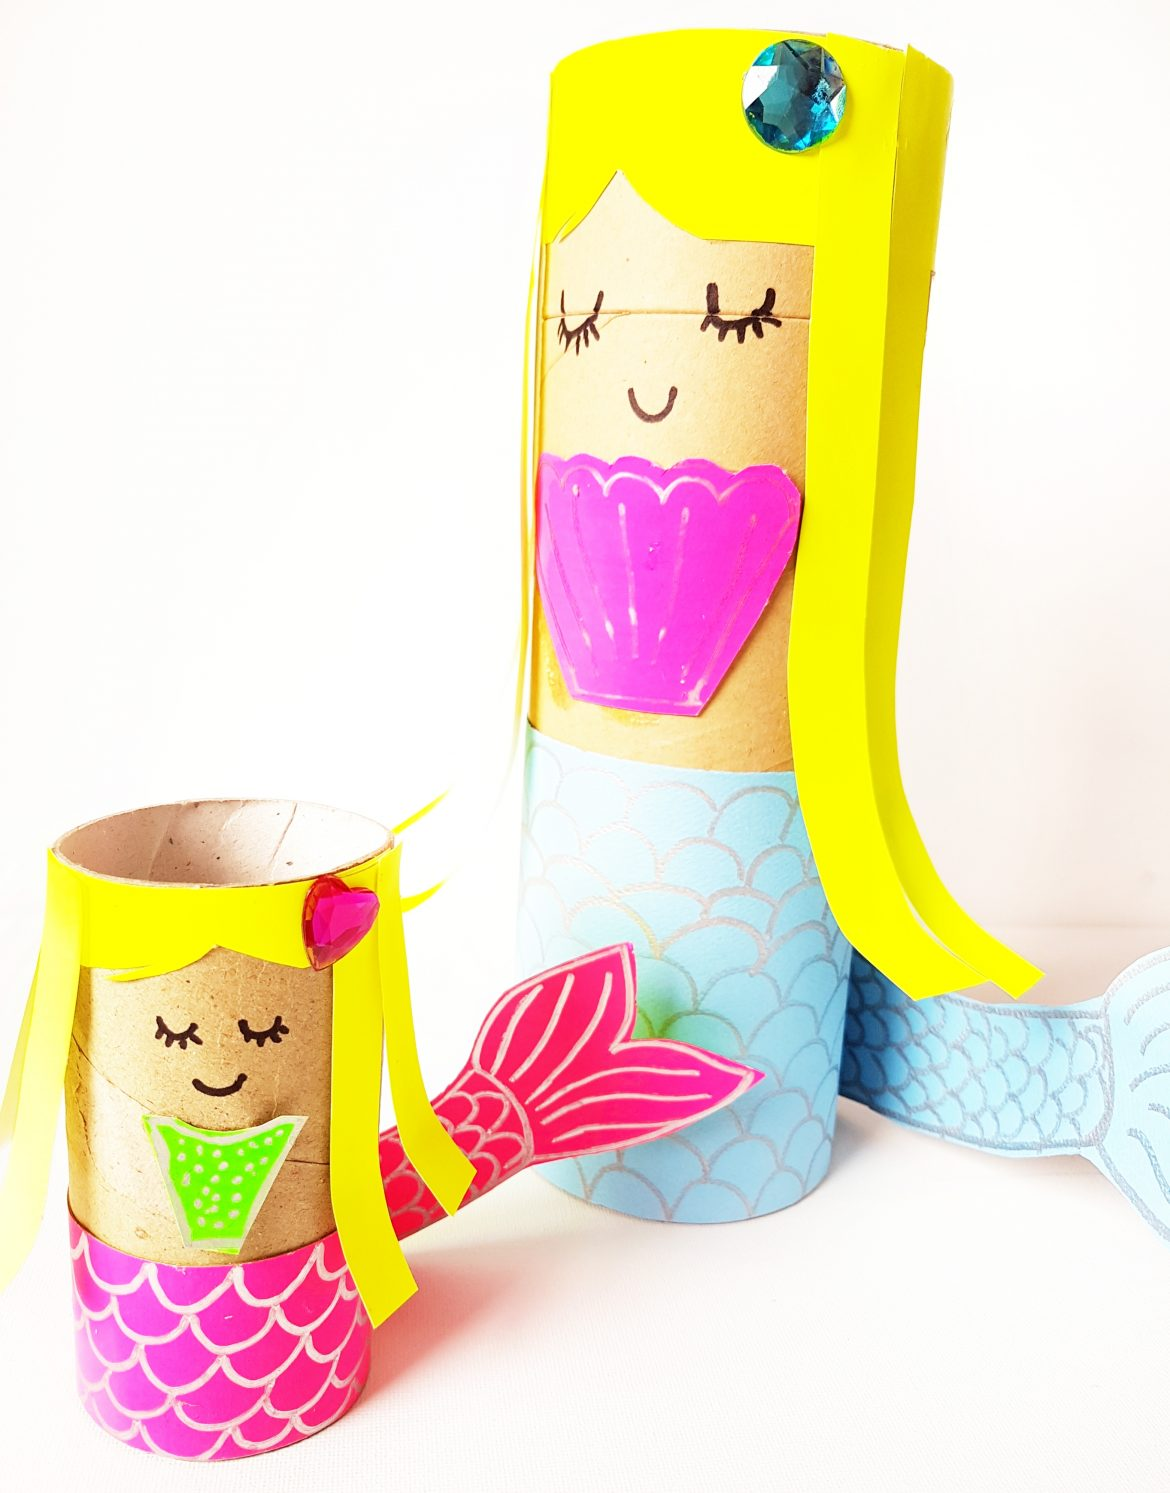 Make this adorable mermaid Craft using paper roll today! #mermaidcraft #oceancrafts